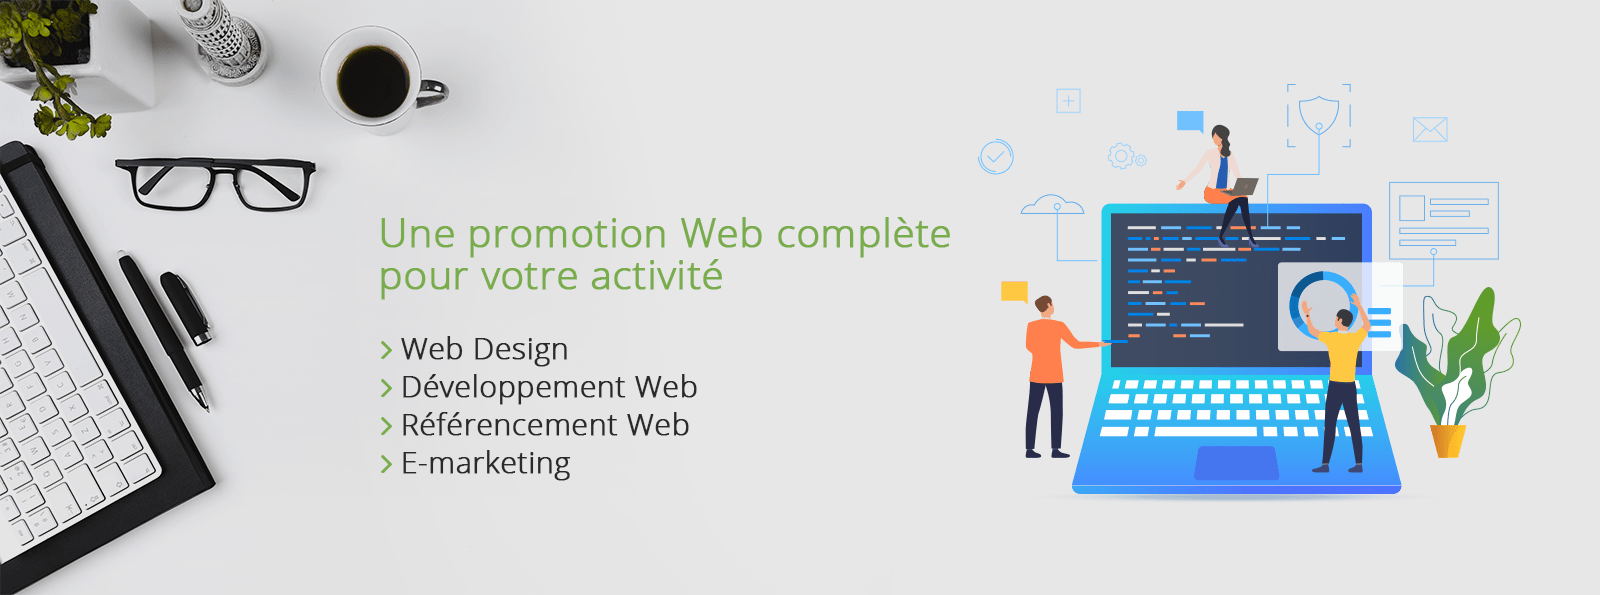 afoulki digital marketing création sites web maroc